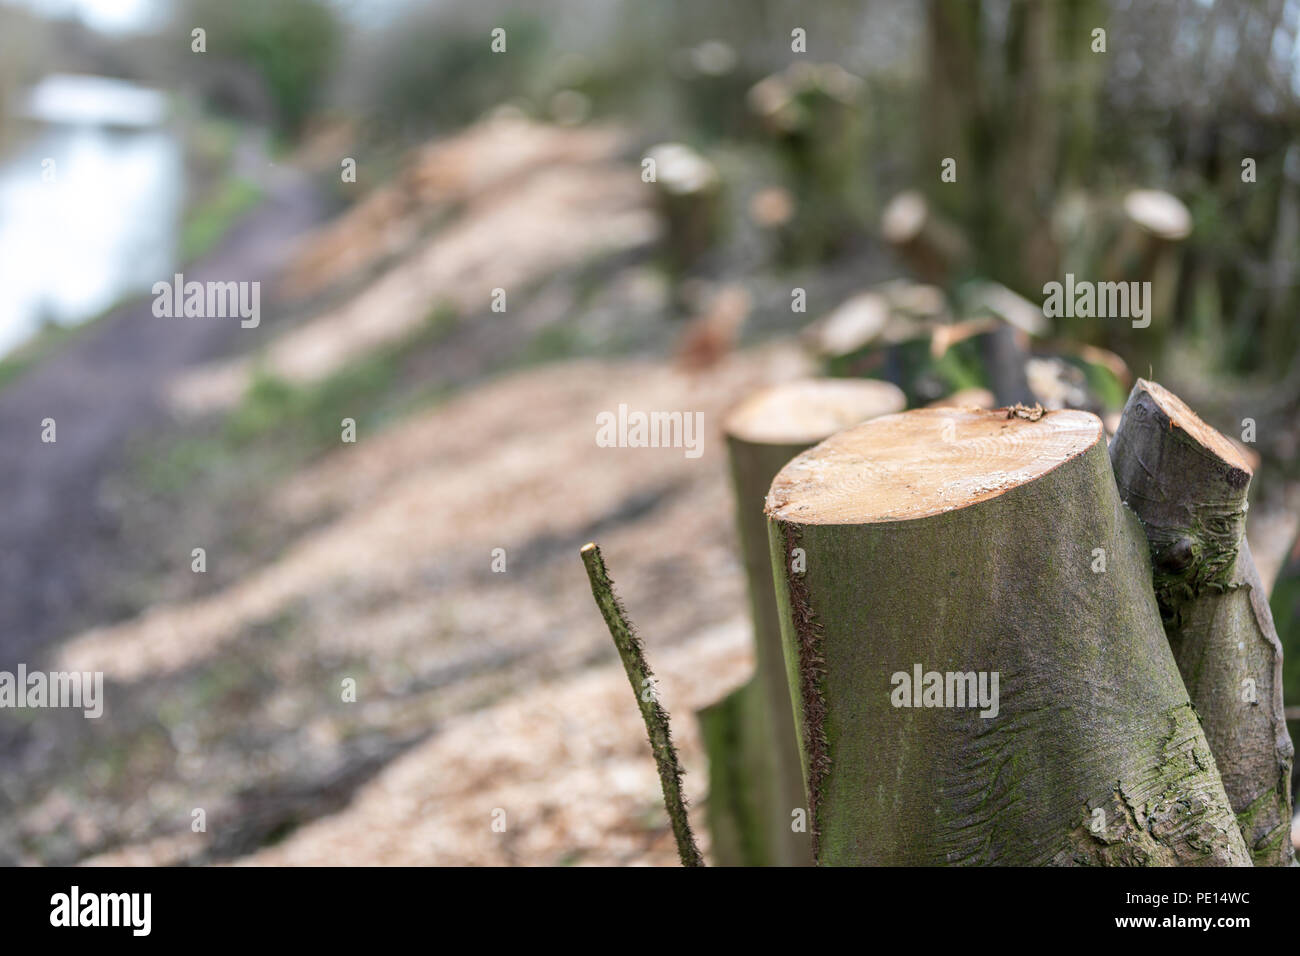 Tree stumps after trees have been cut down on the Macclesfield canal in Cheshire as part of a concervation based canal towpath maintenance programme - Stock Image